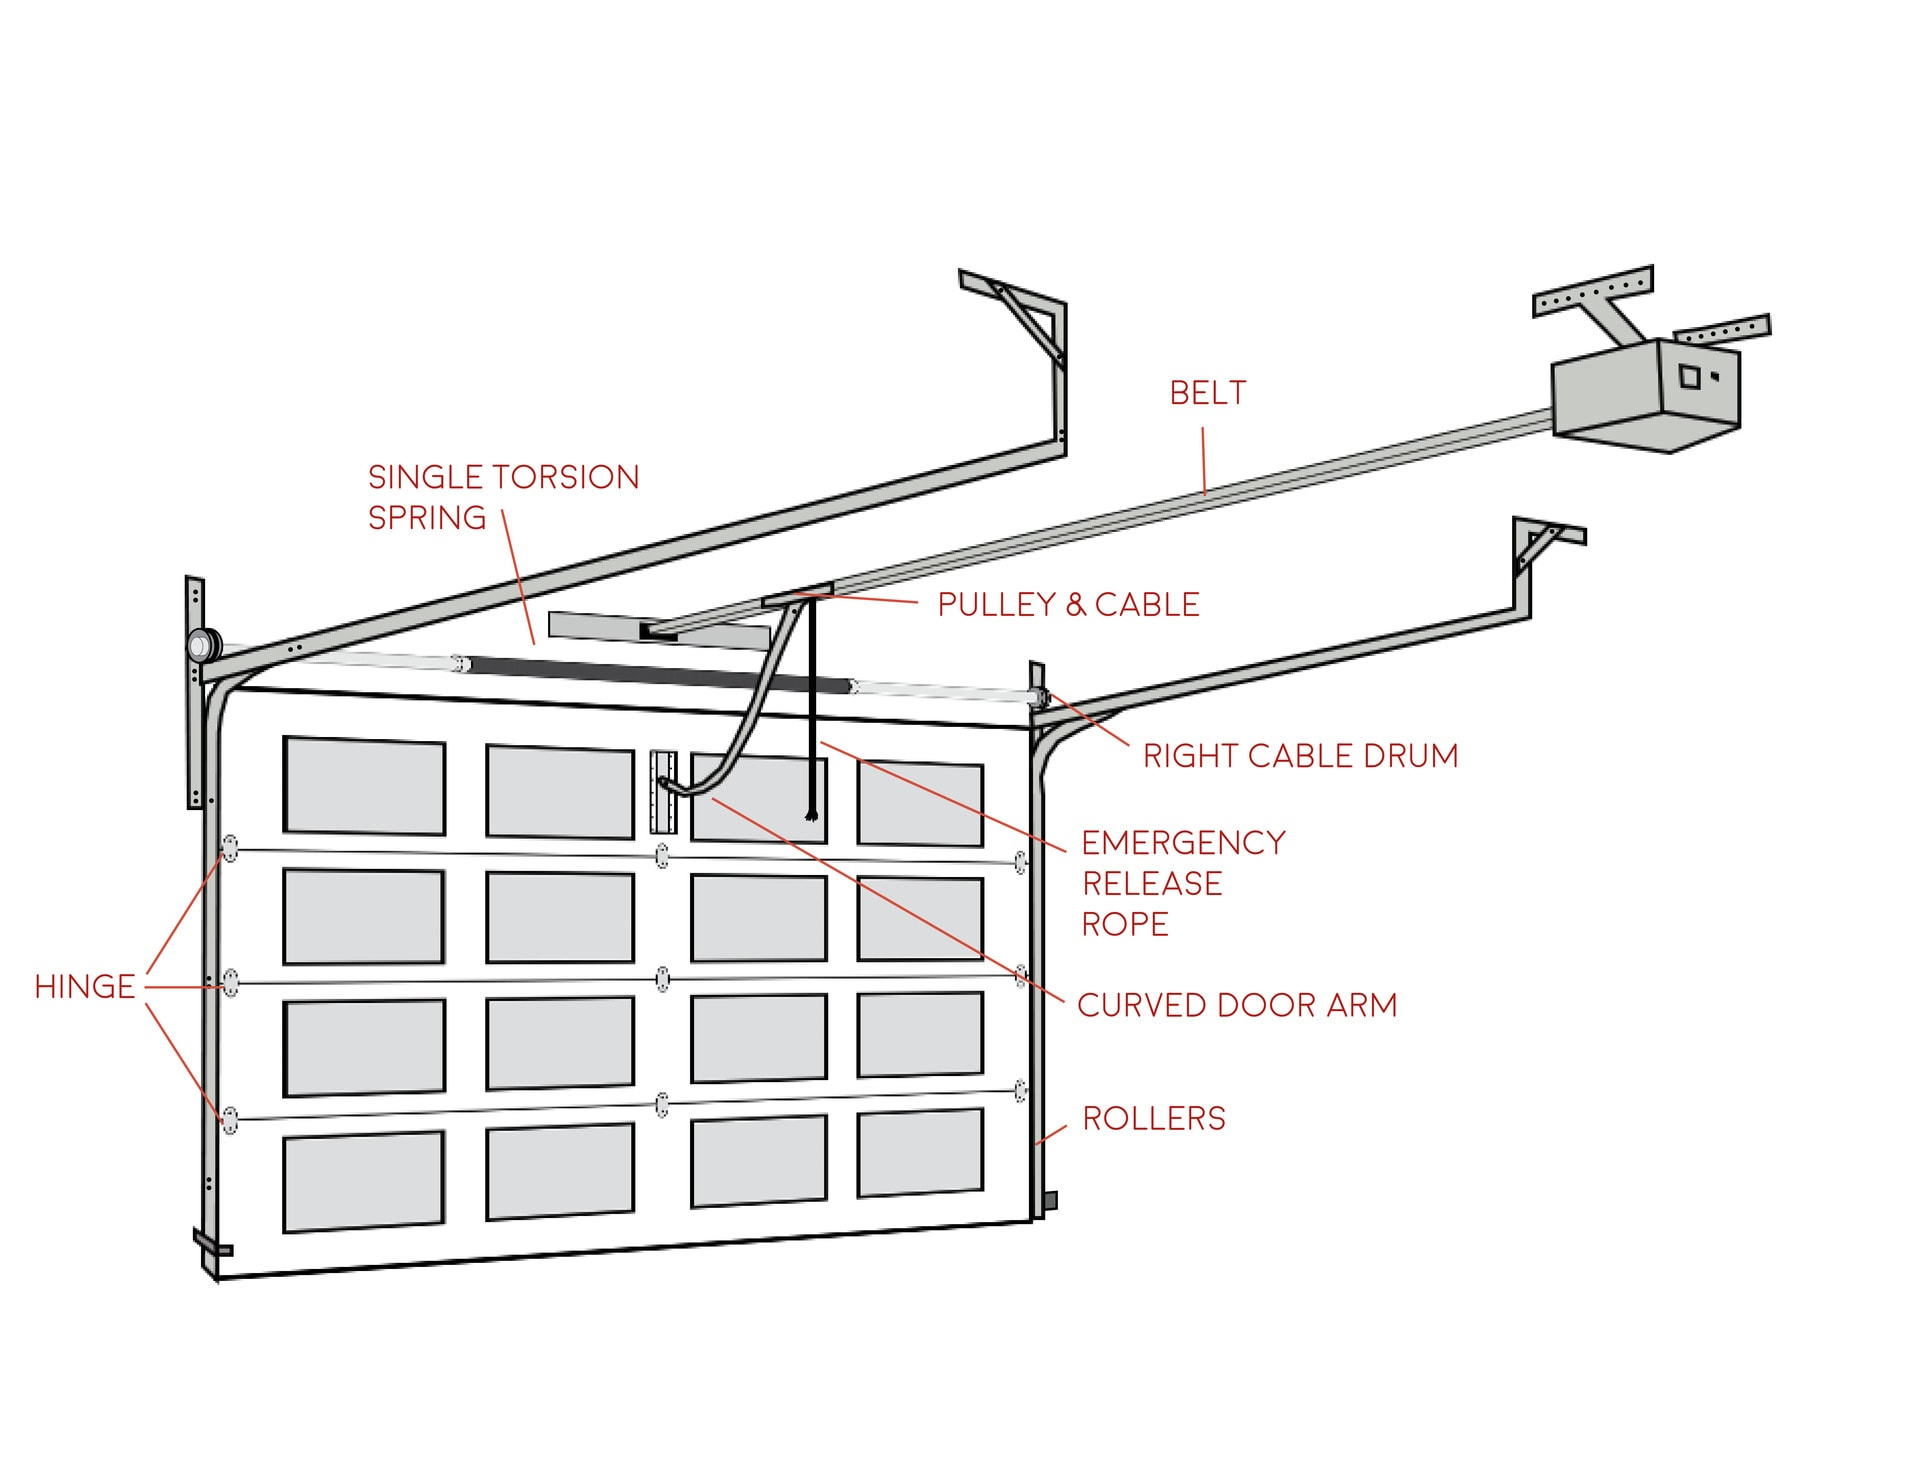 Garage Door Schematic - Wiring Diagram K7 on